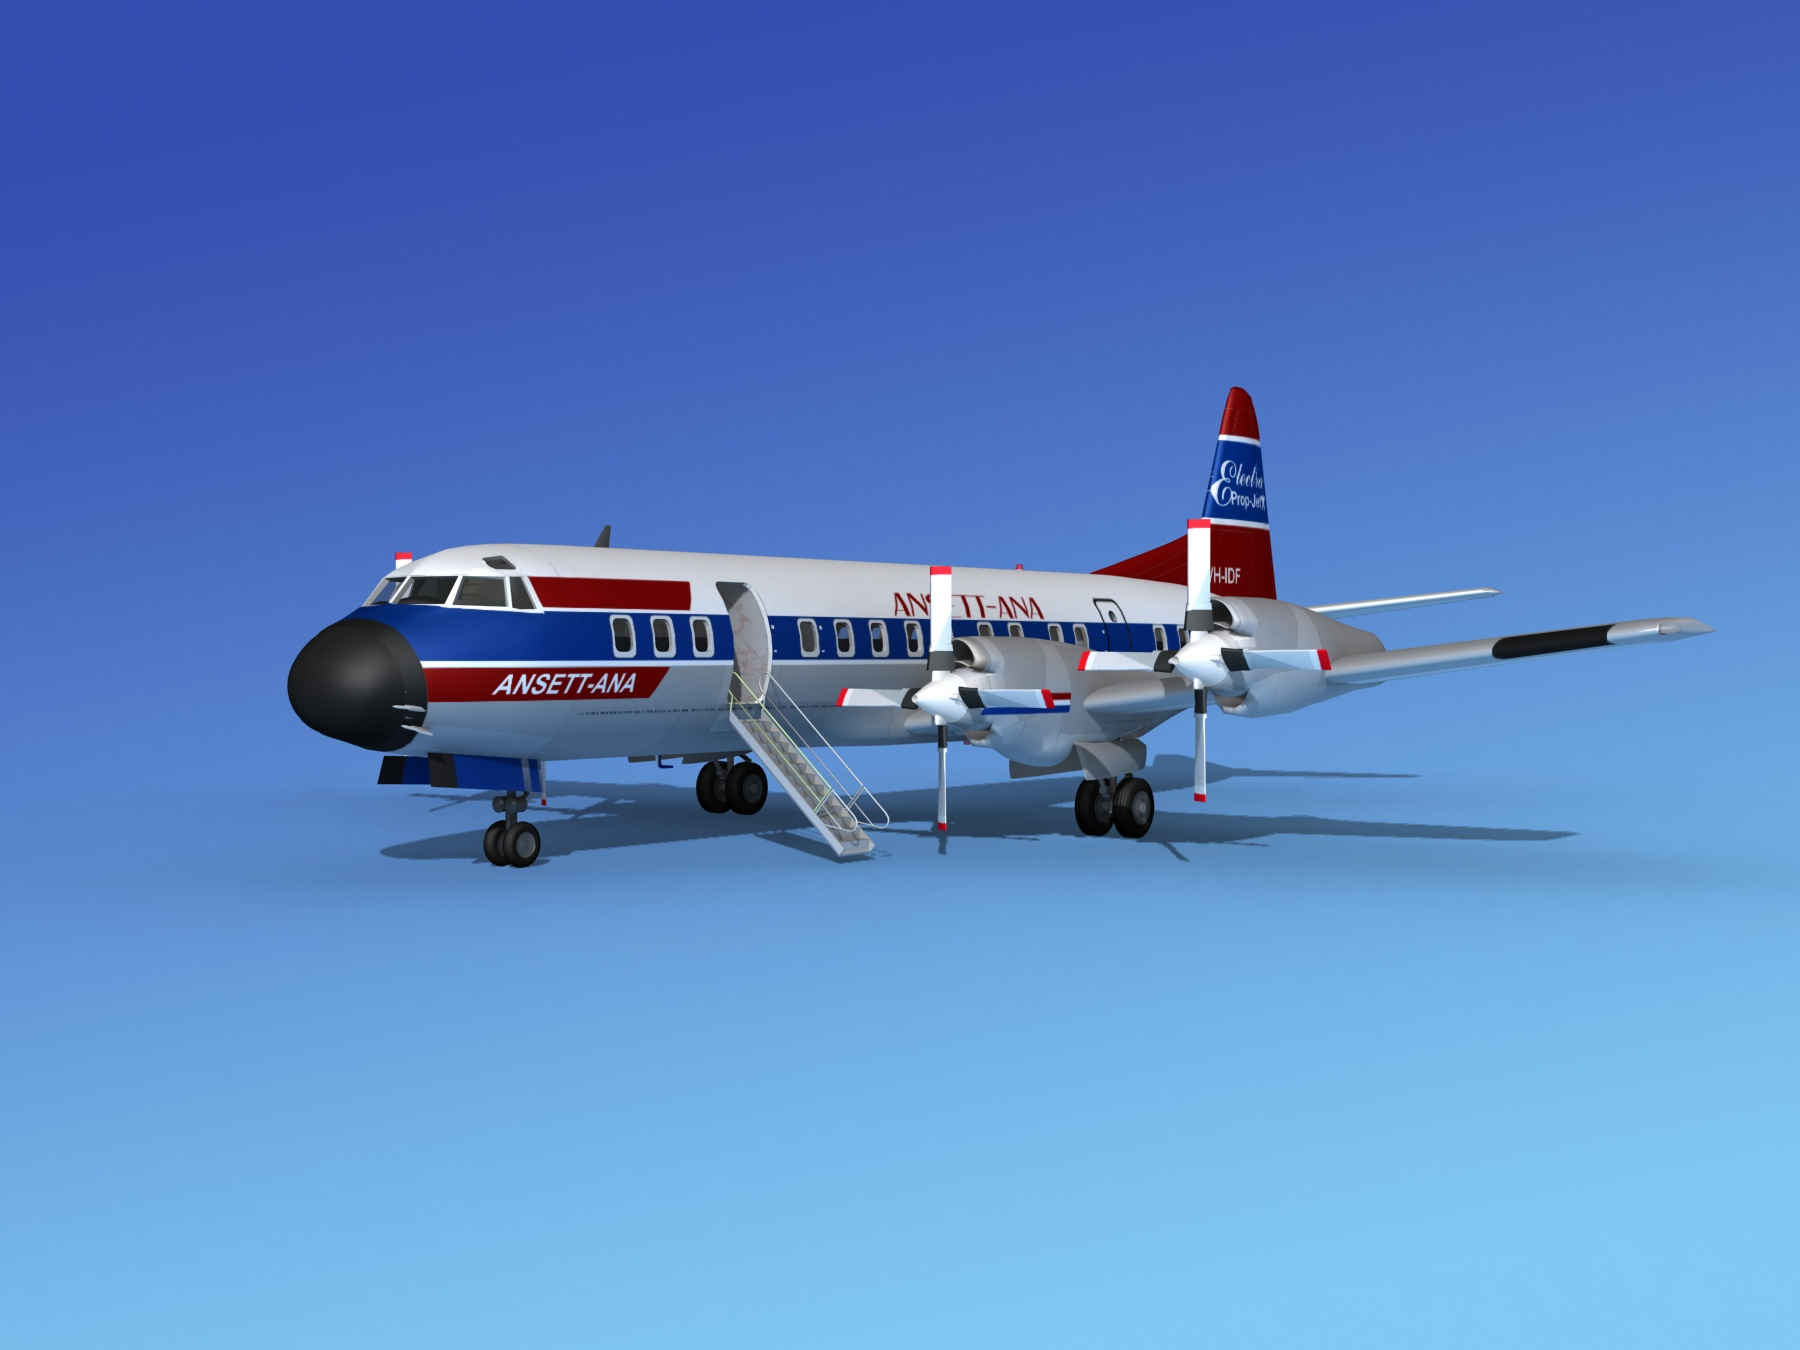 Lockheed L-188 Electra HP Ansett-ANA | 3D model